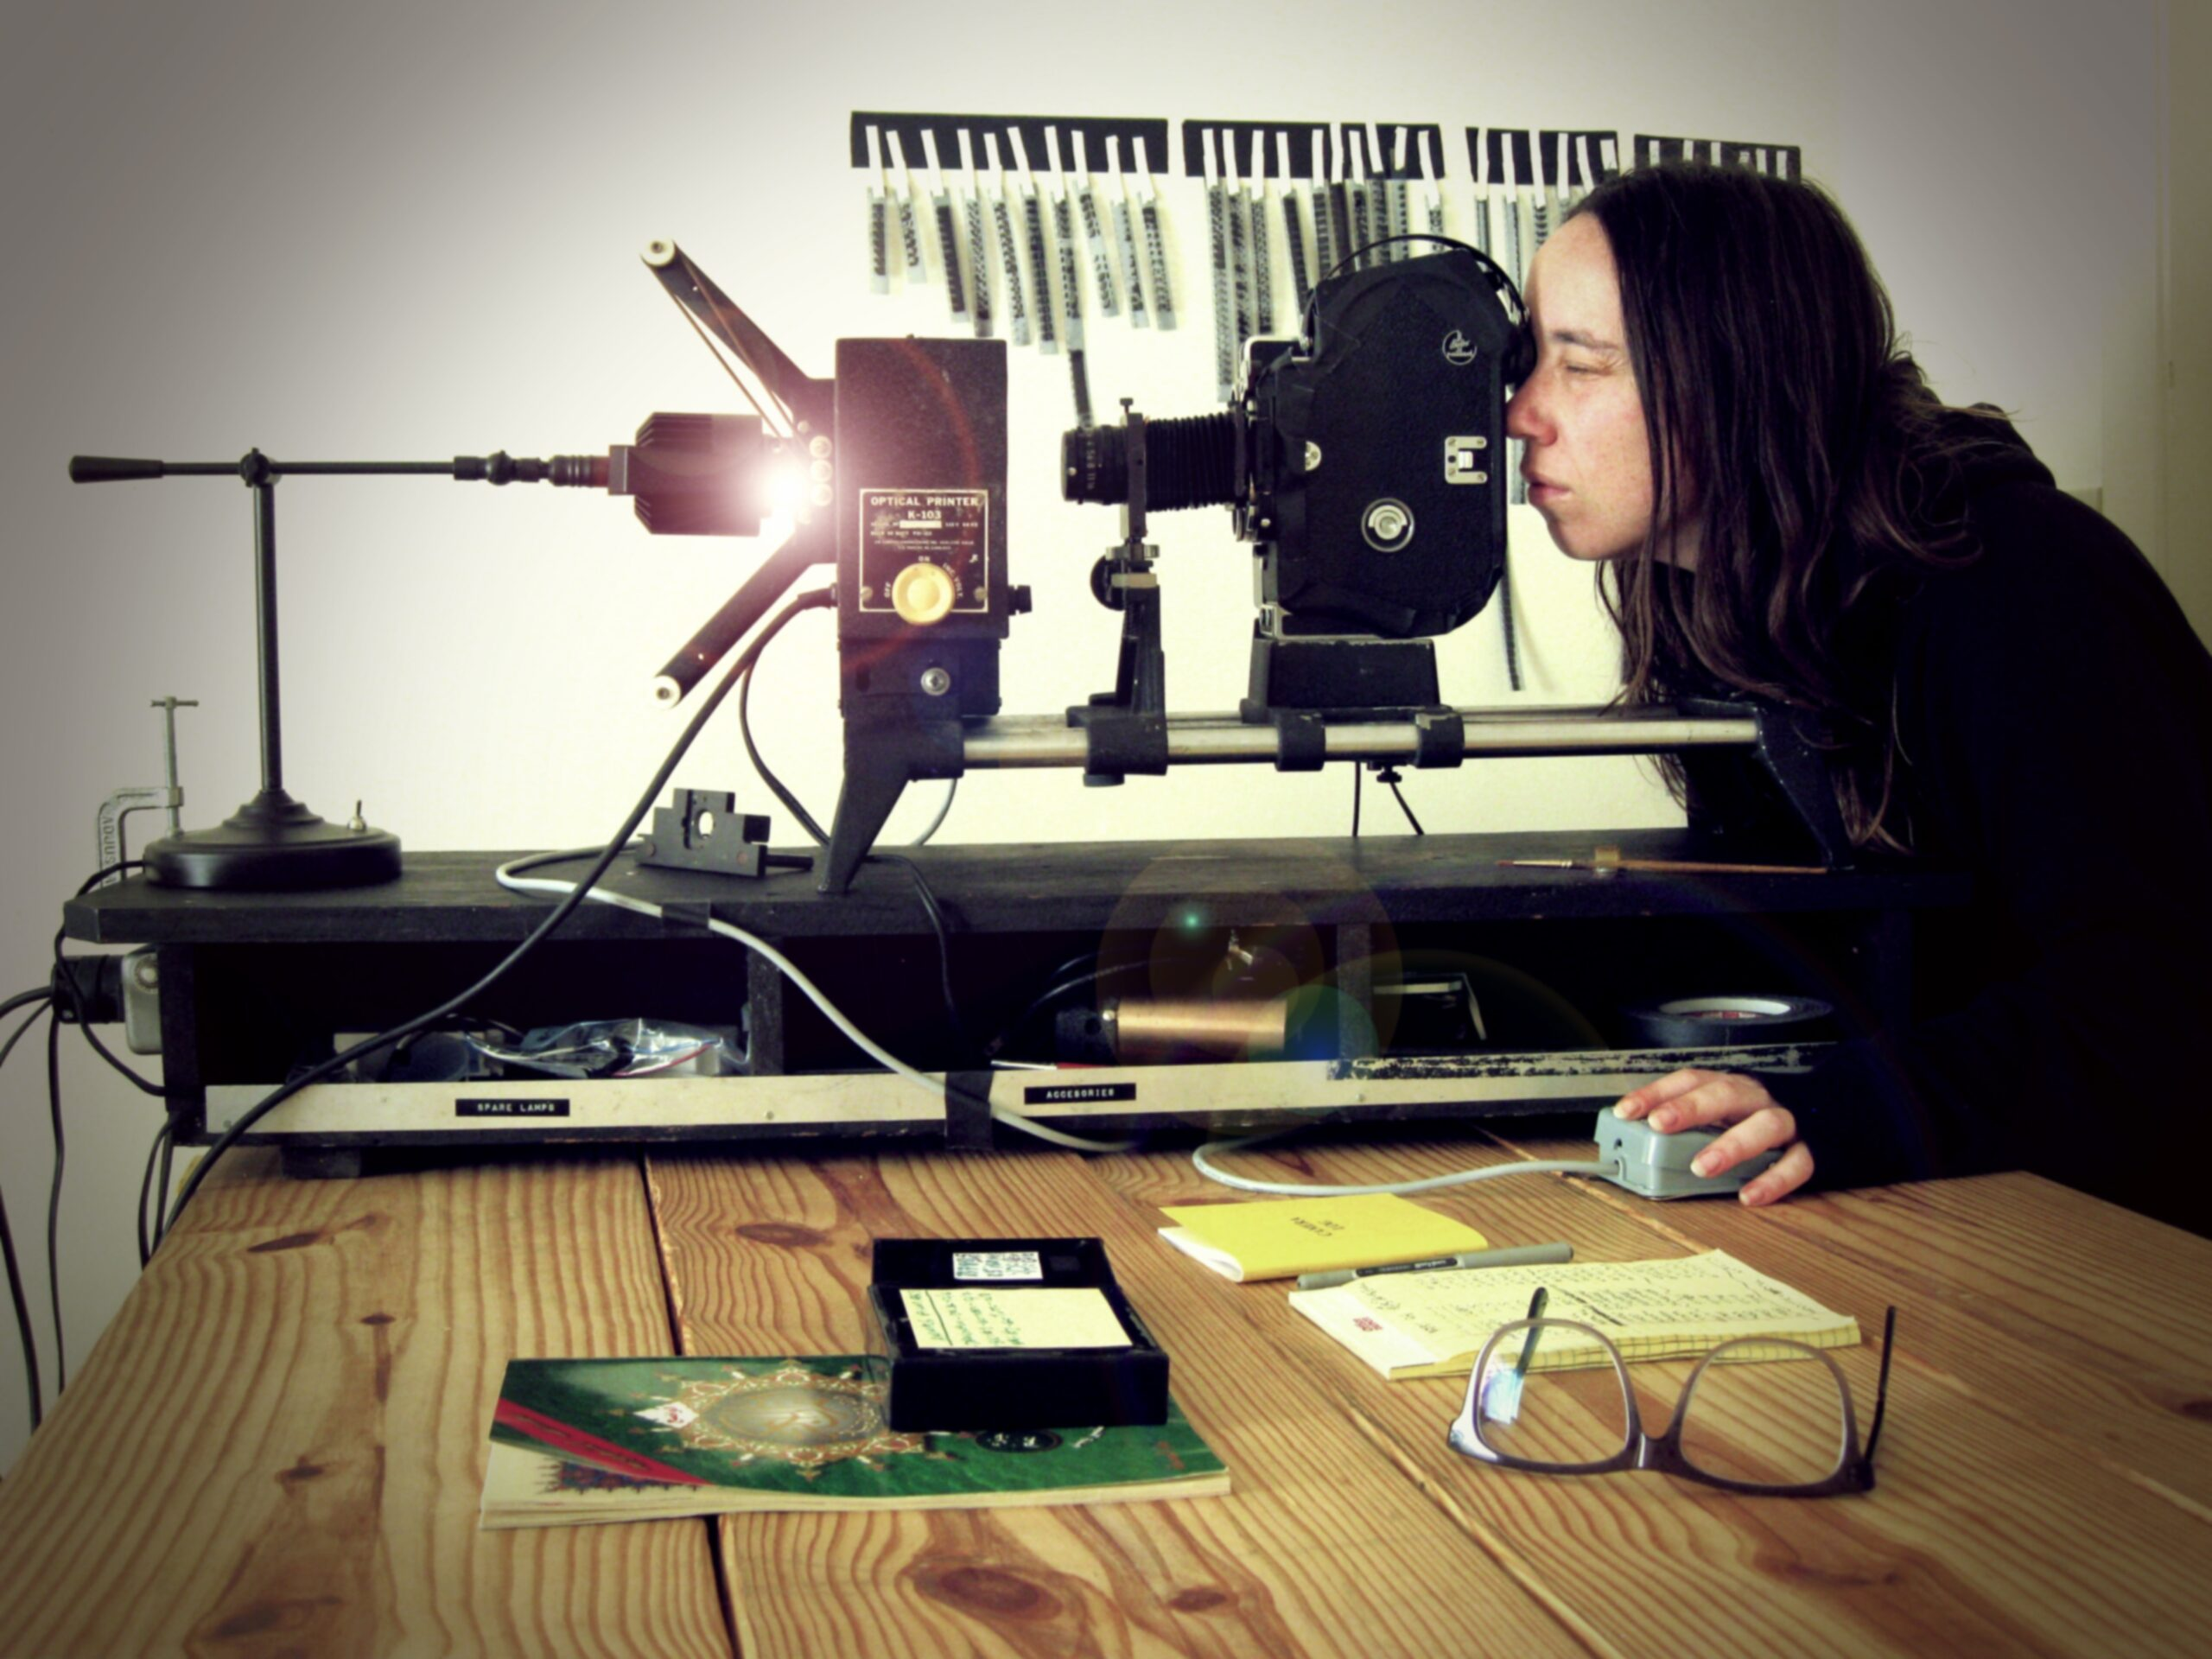 An artist uses photography processing equipment